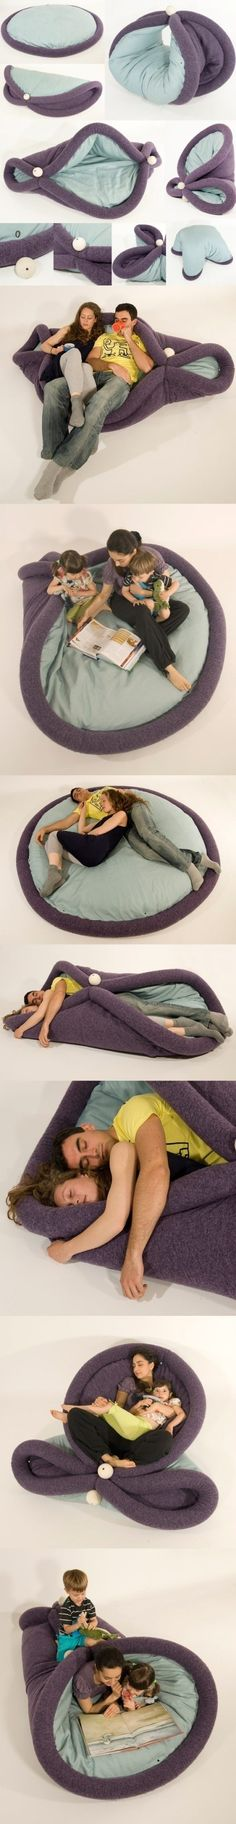 Blandito pillow. i want